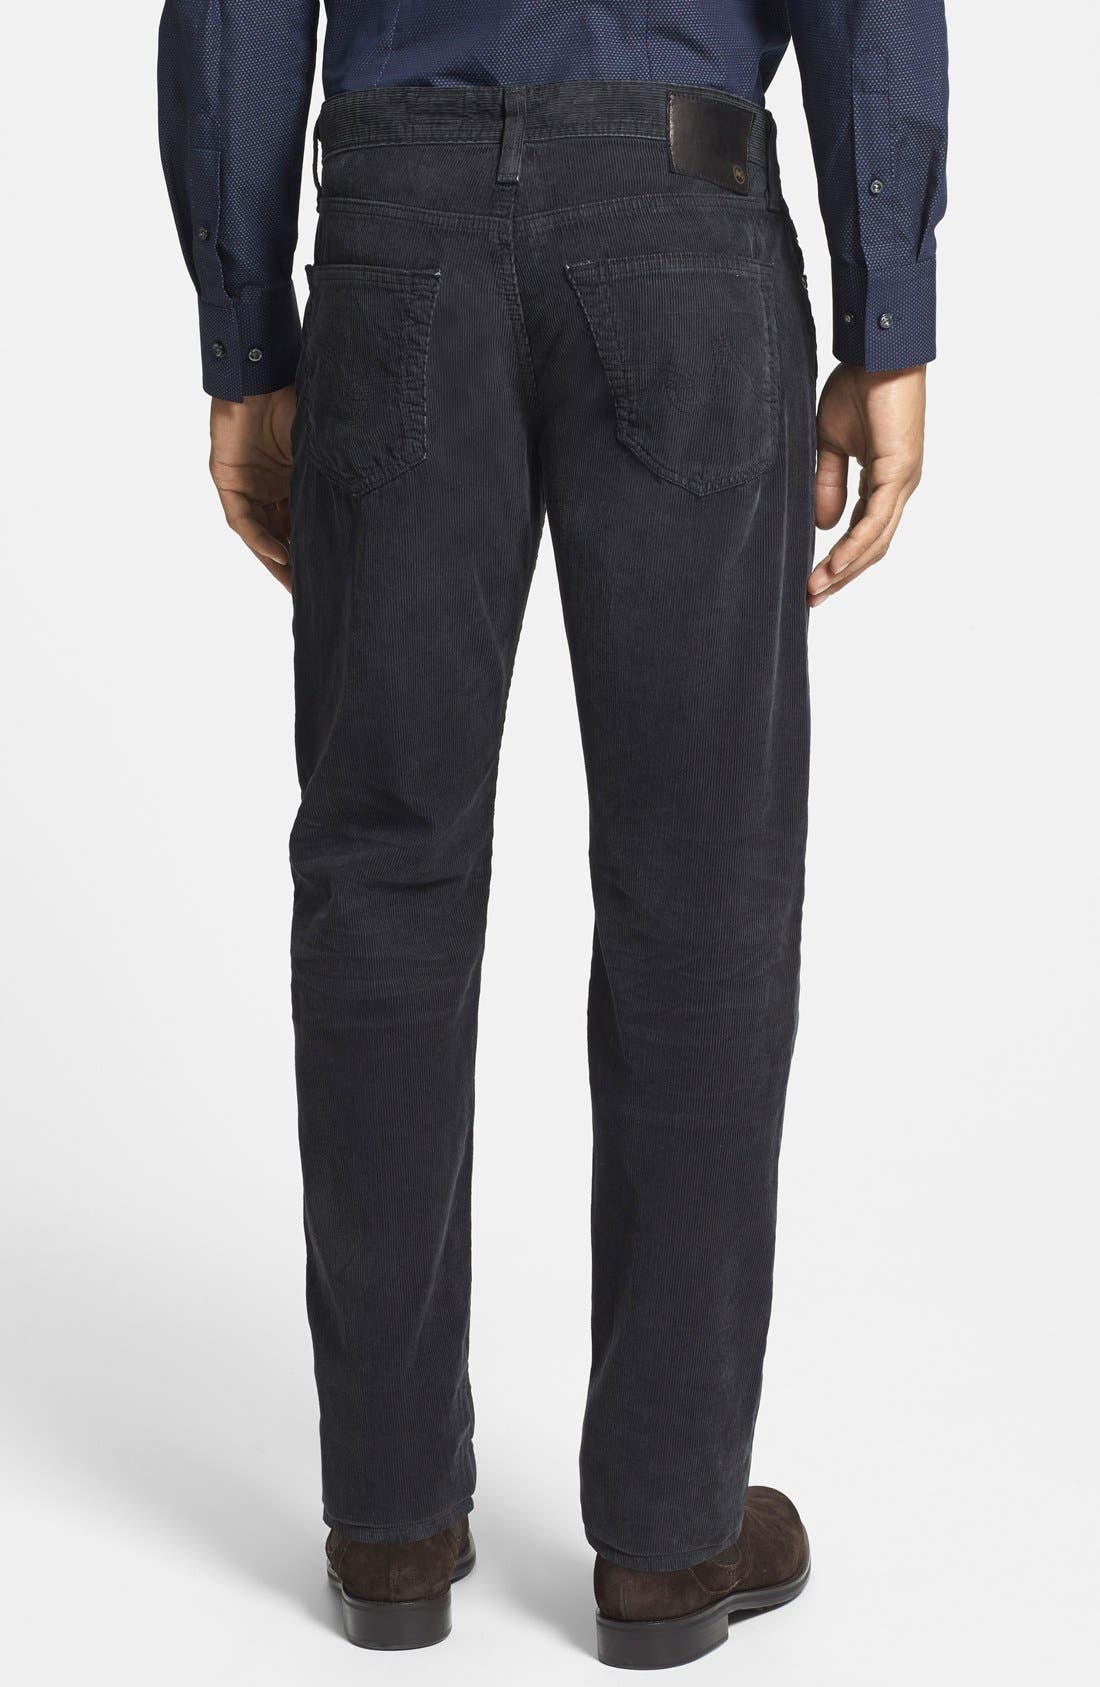 'Graduate' Tailored Straight Leg Corduroy Pants,                             Alternate thumbnail 73, color,